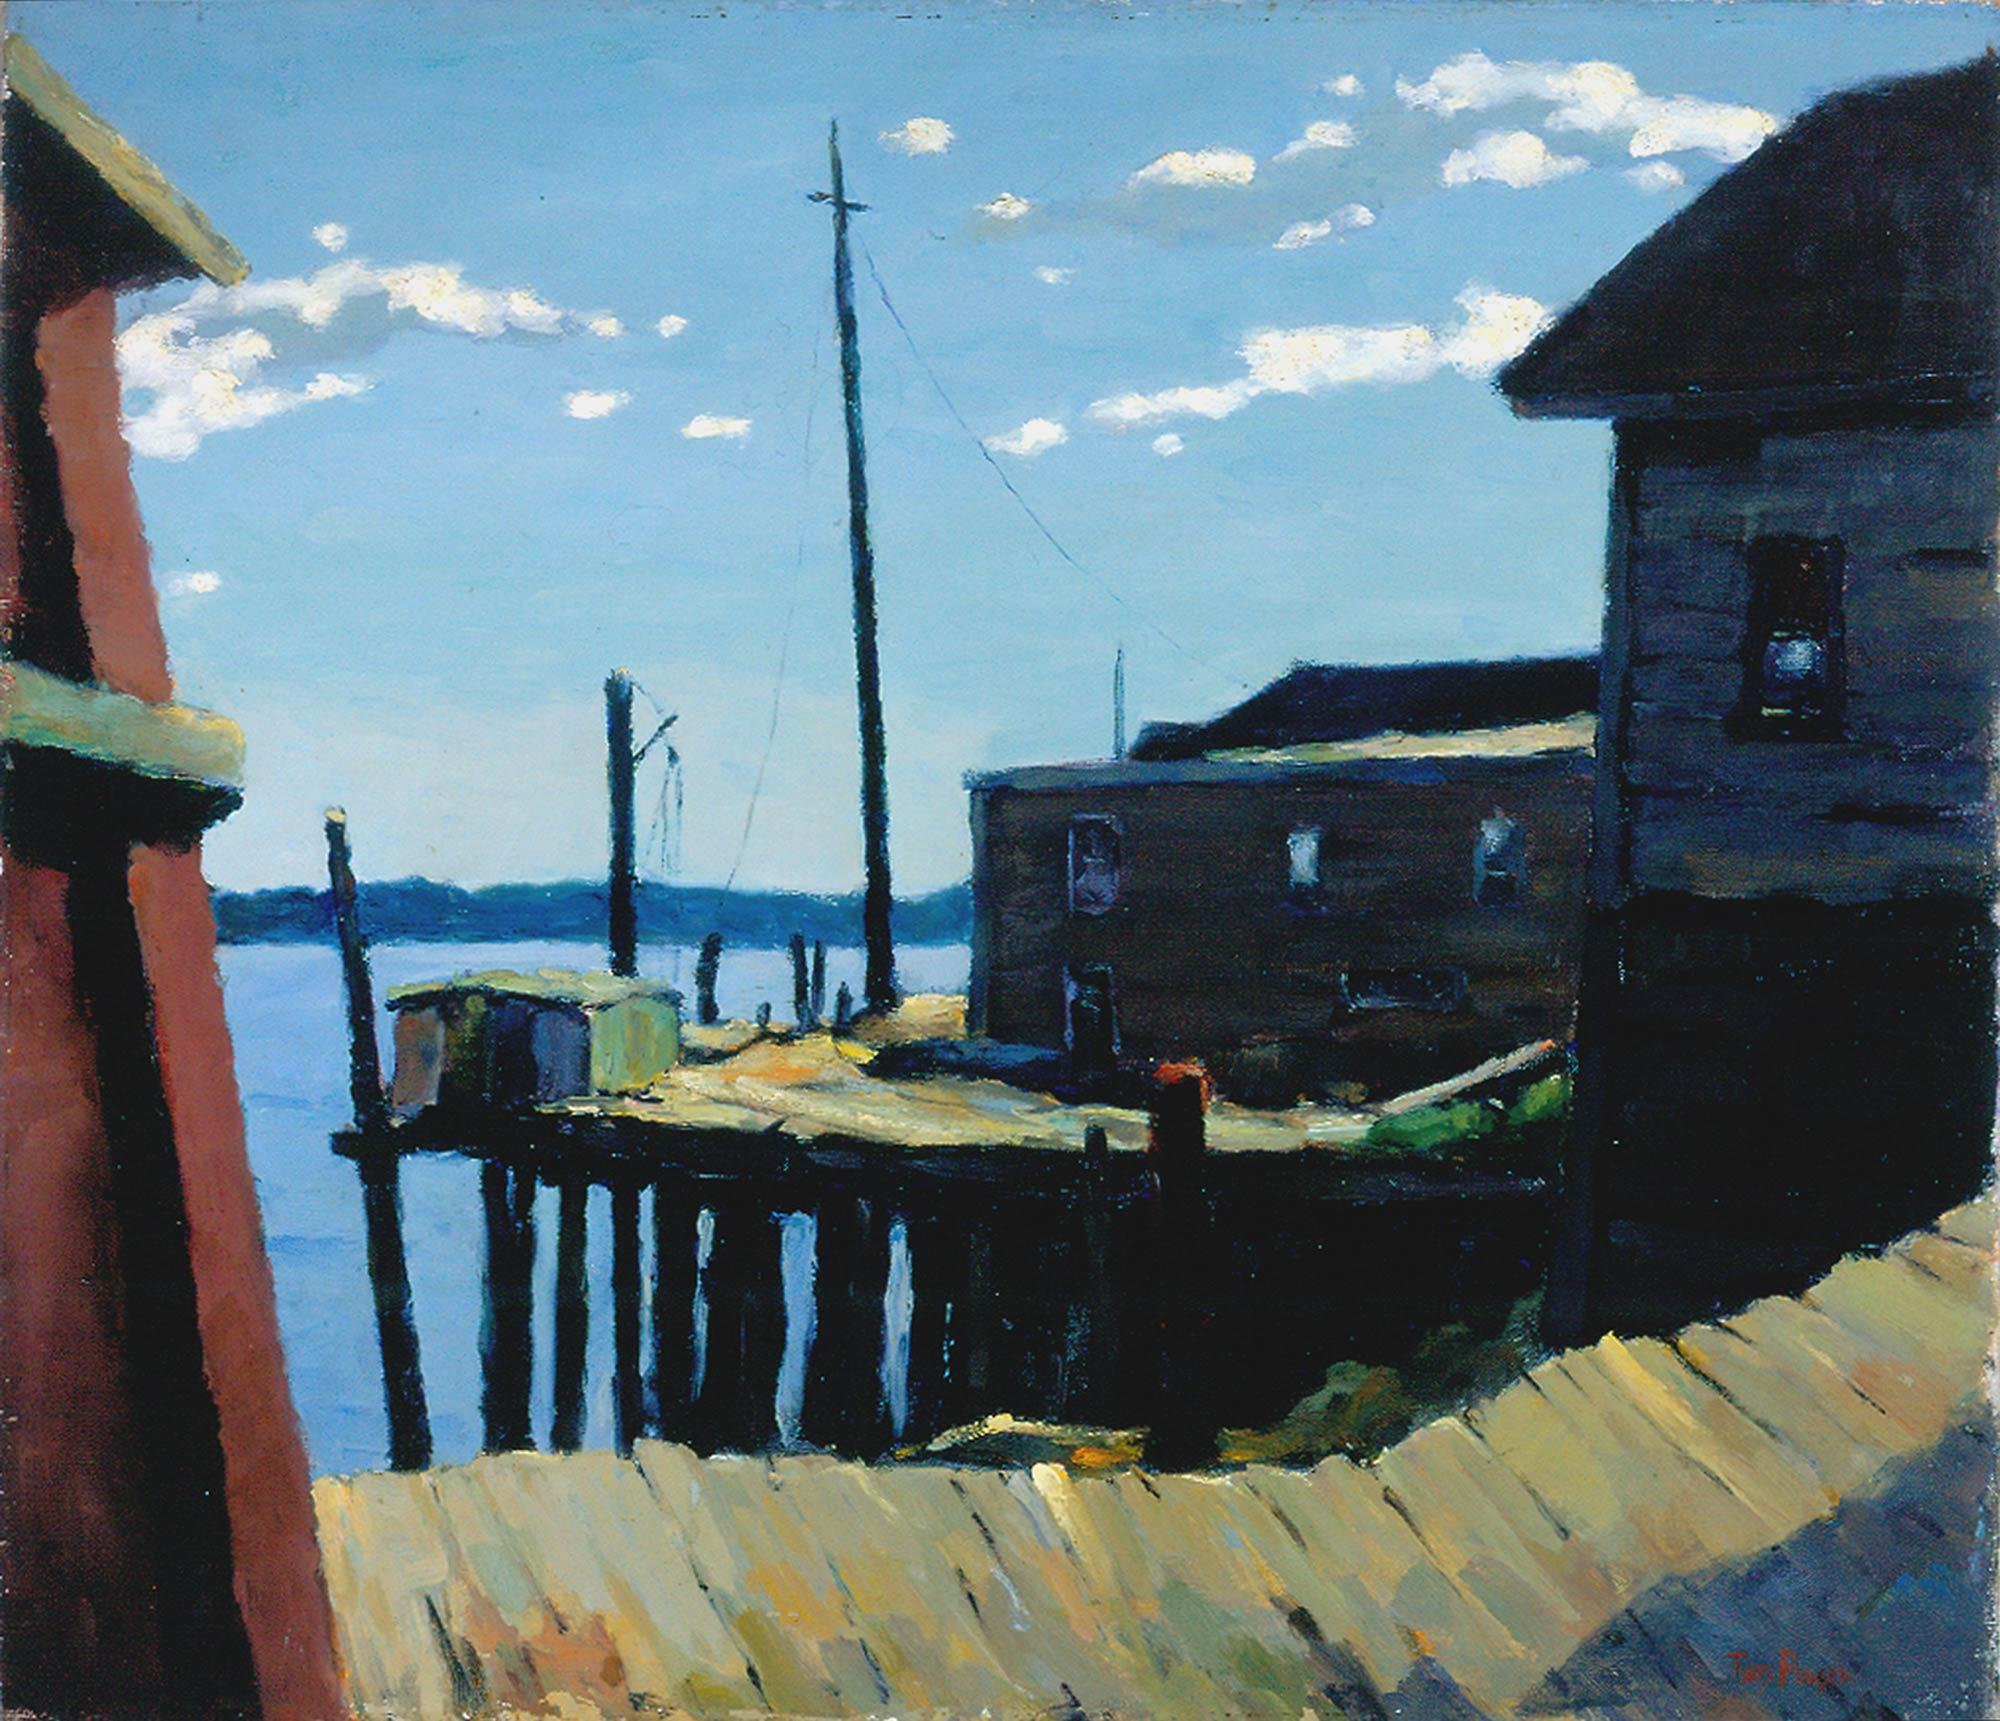 Tunis Ponsen, American, b. Holland, 1891–1968. The Old Pier, n.d. Oil on canvas, 26 ¼ x 30 ¼ in. Museum purchase by popular subscription, 1929.1